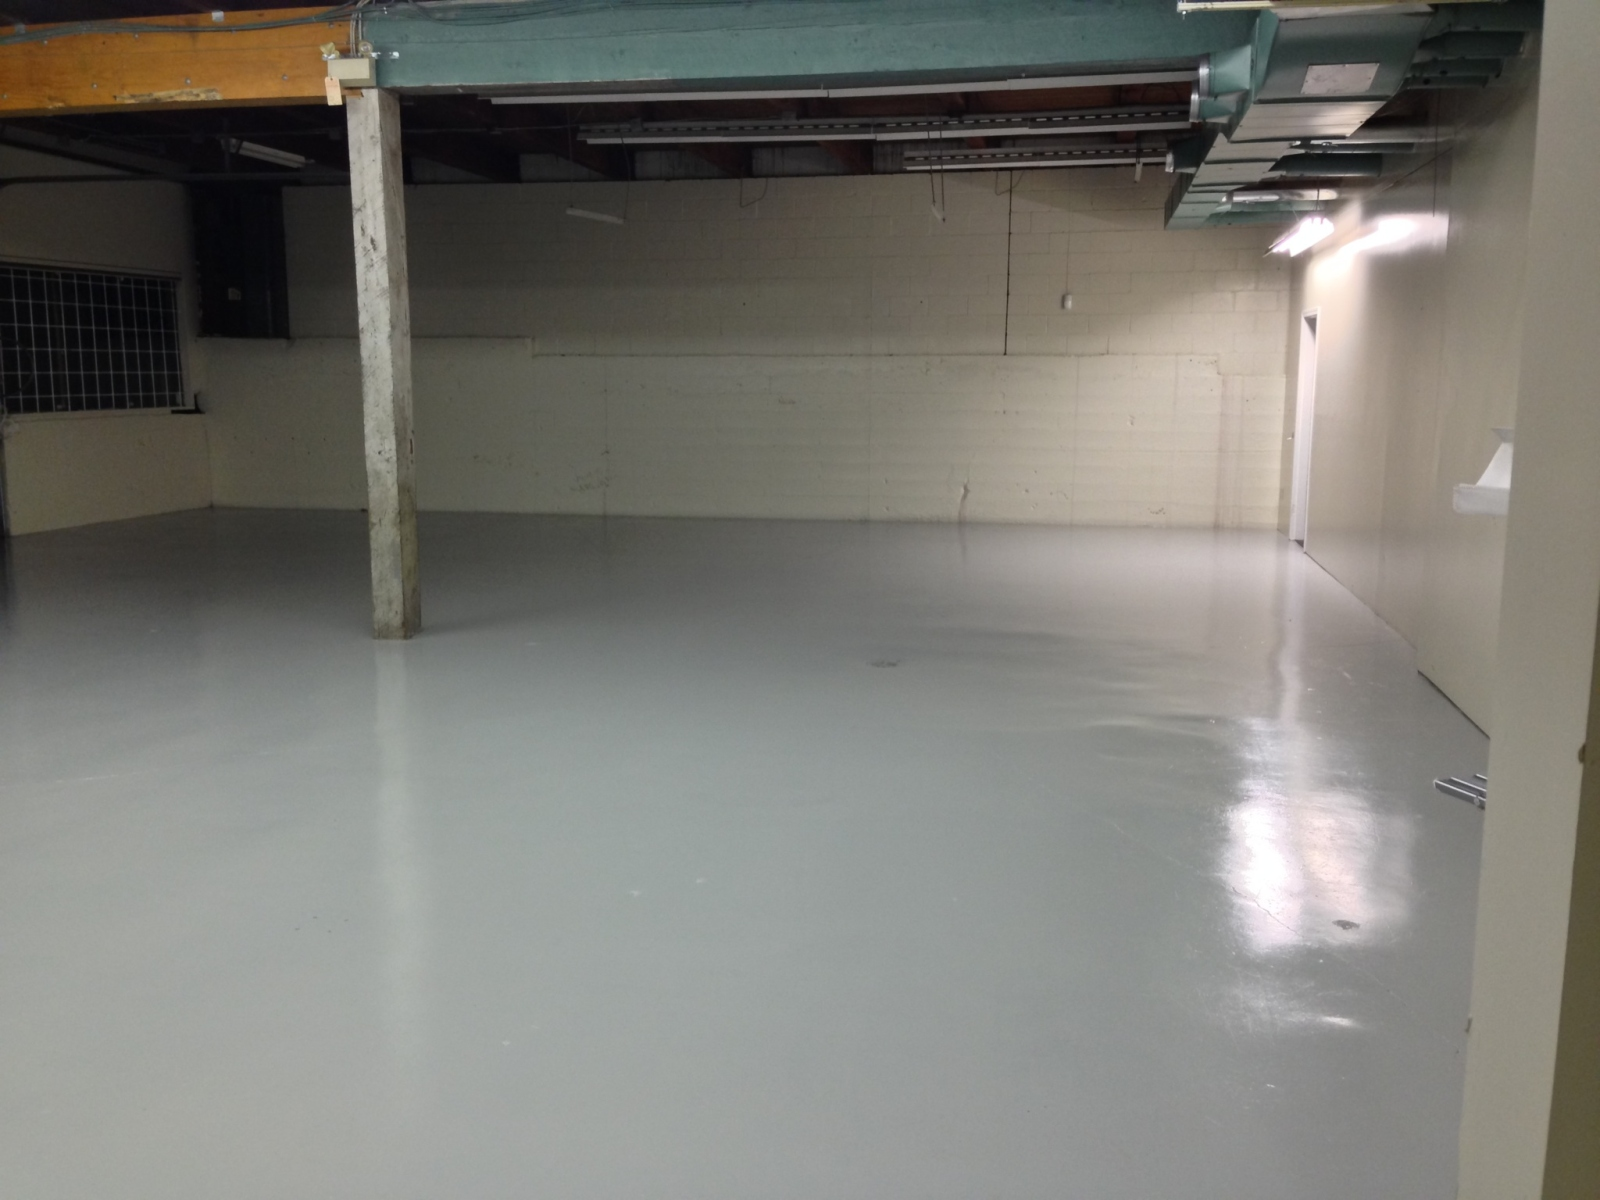 Epoxy Floor After Vanguard Painting.jpg